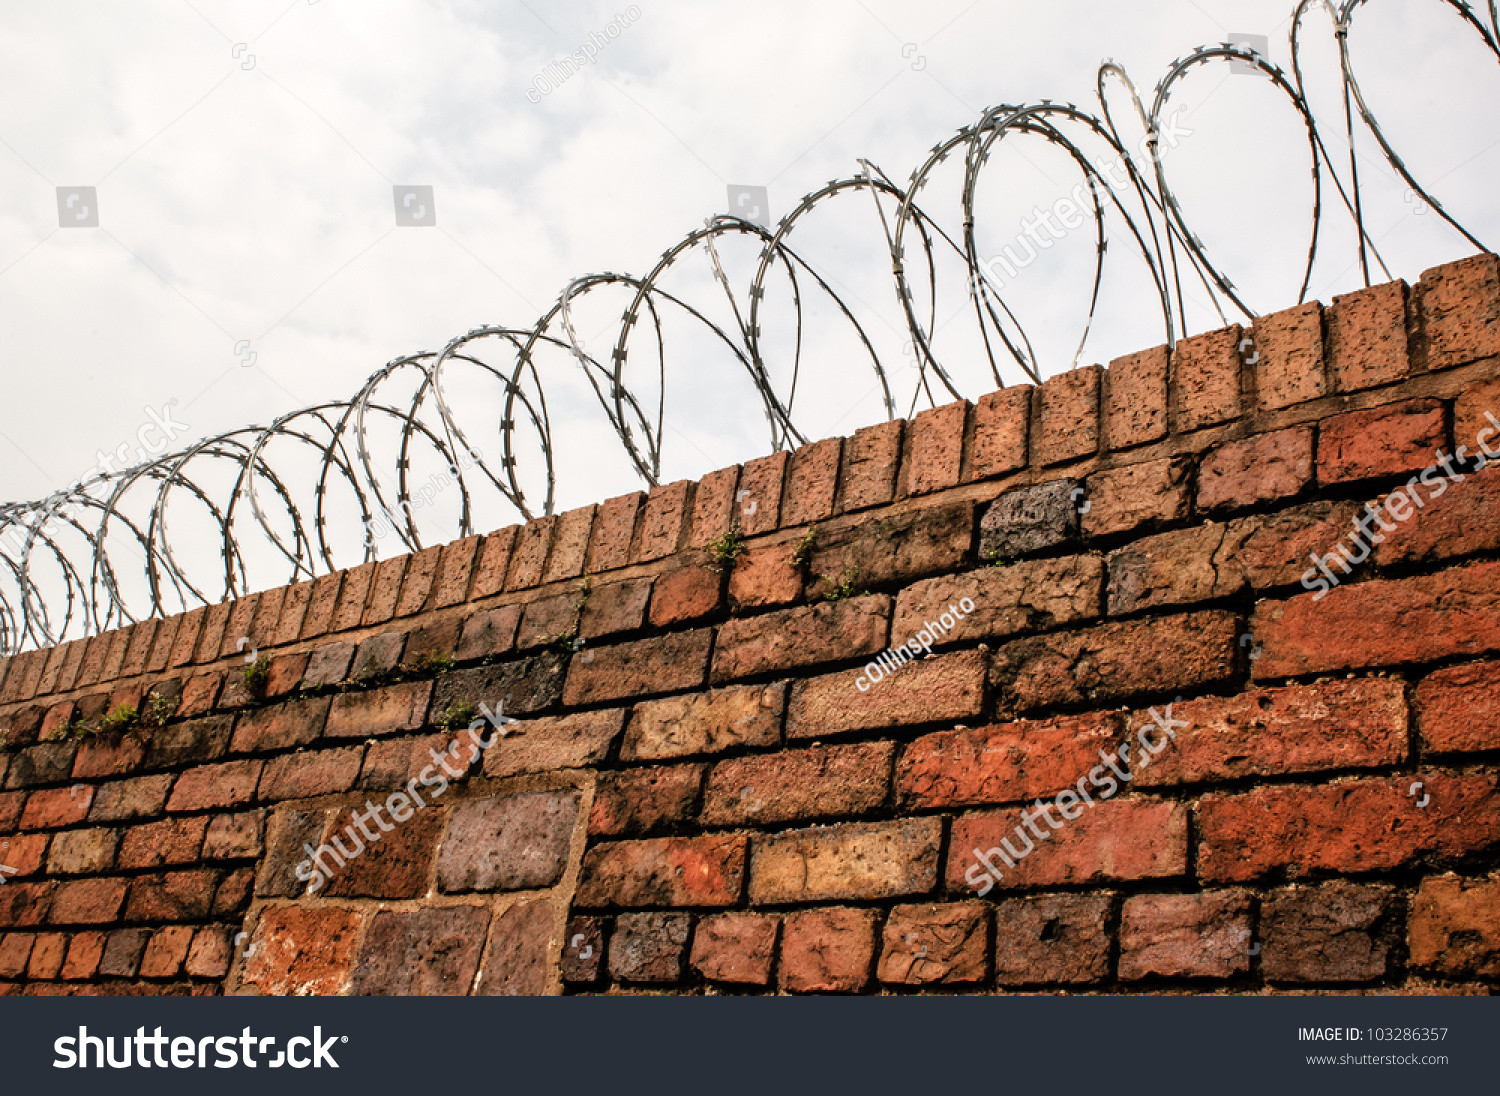 Barbed Wire Wall : Barbed wire coil mounted on top stock photo